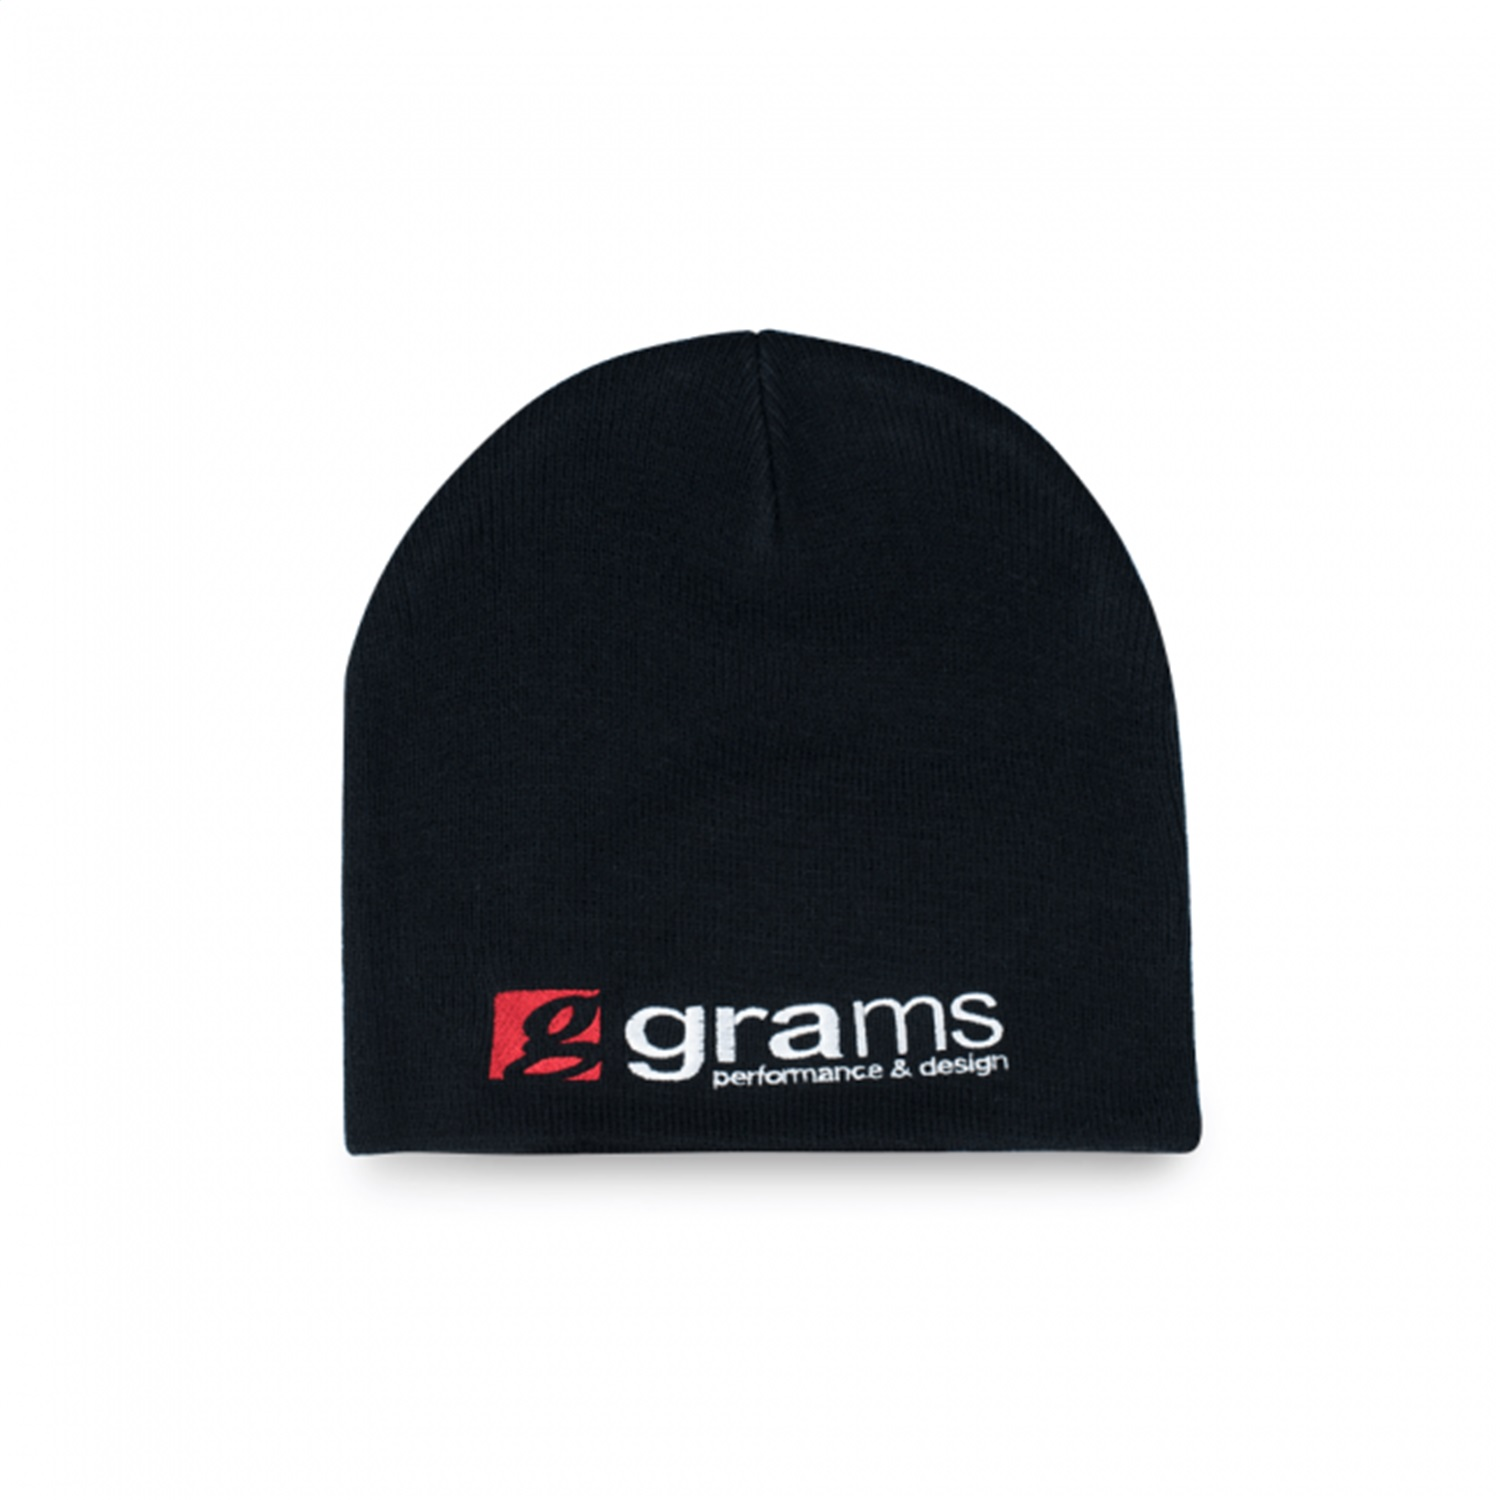 Grams Performance and Design G31-99-0900 Beanie